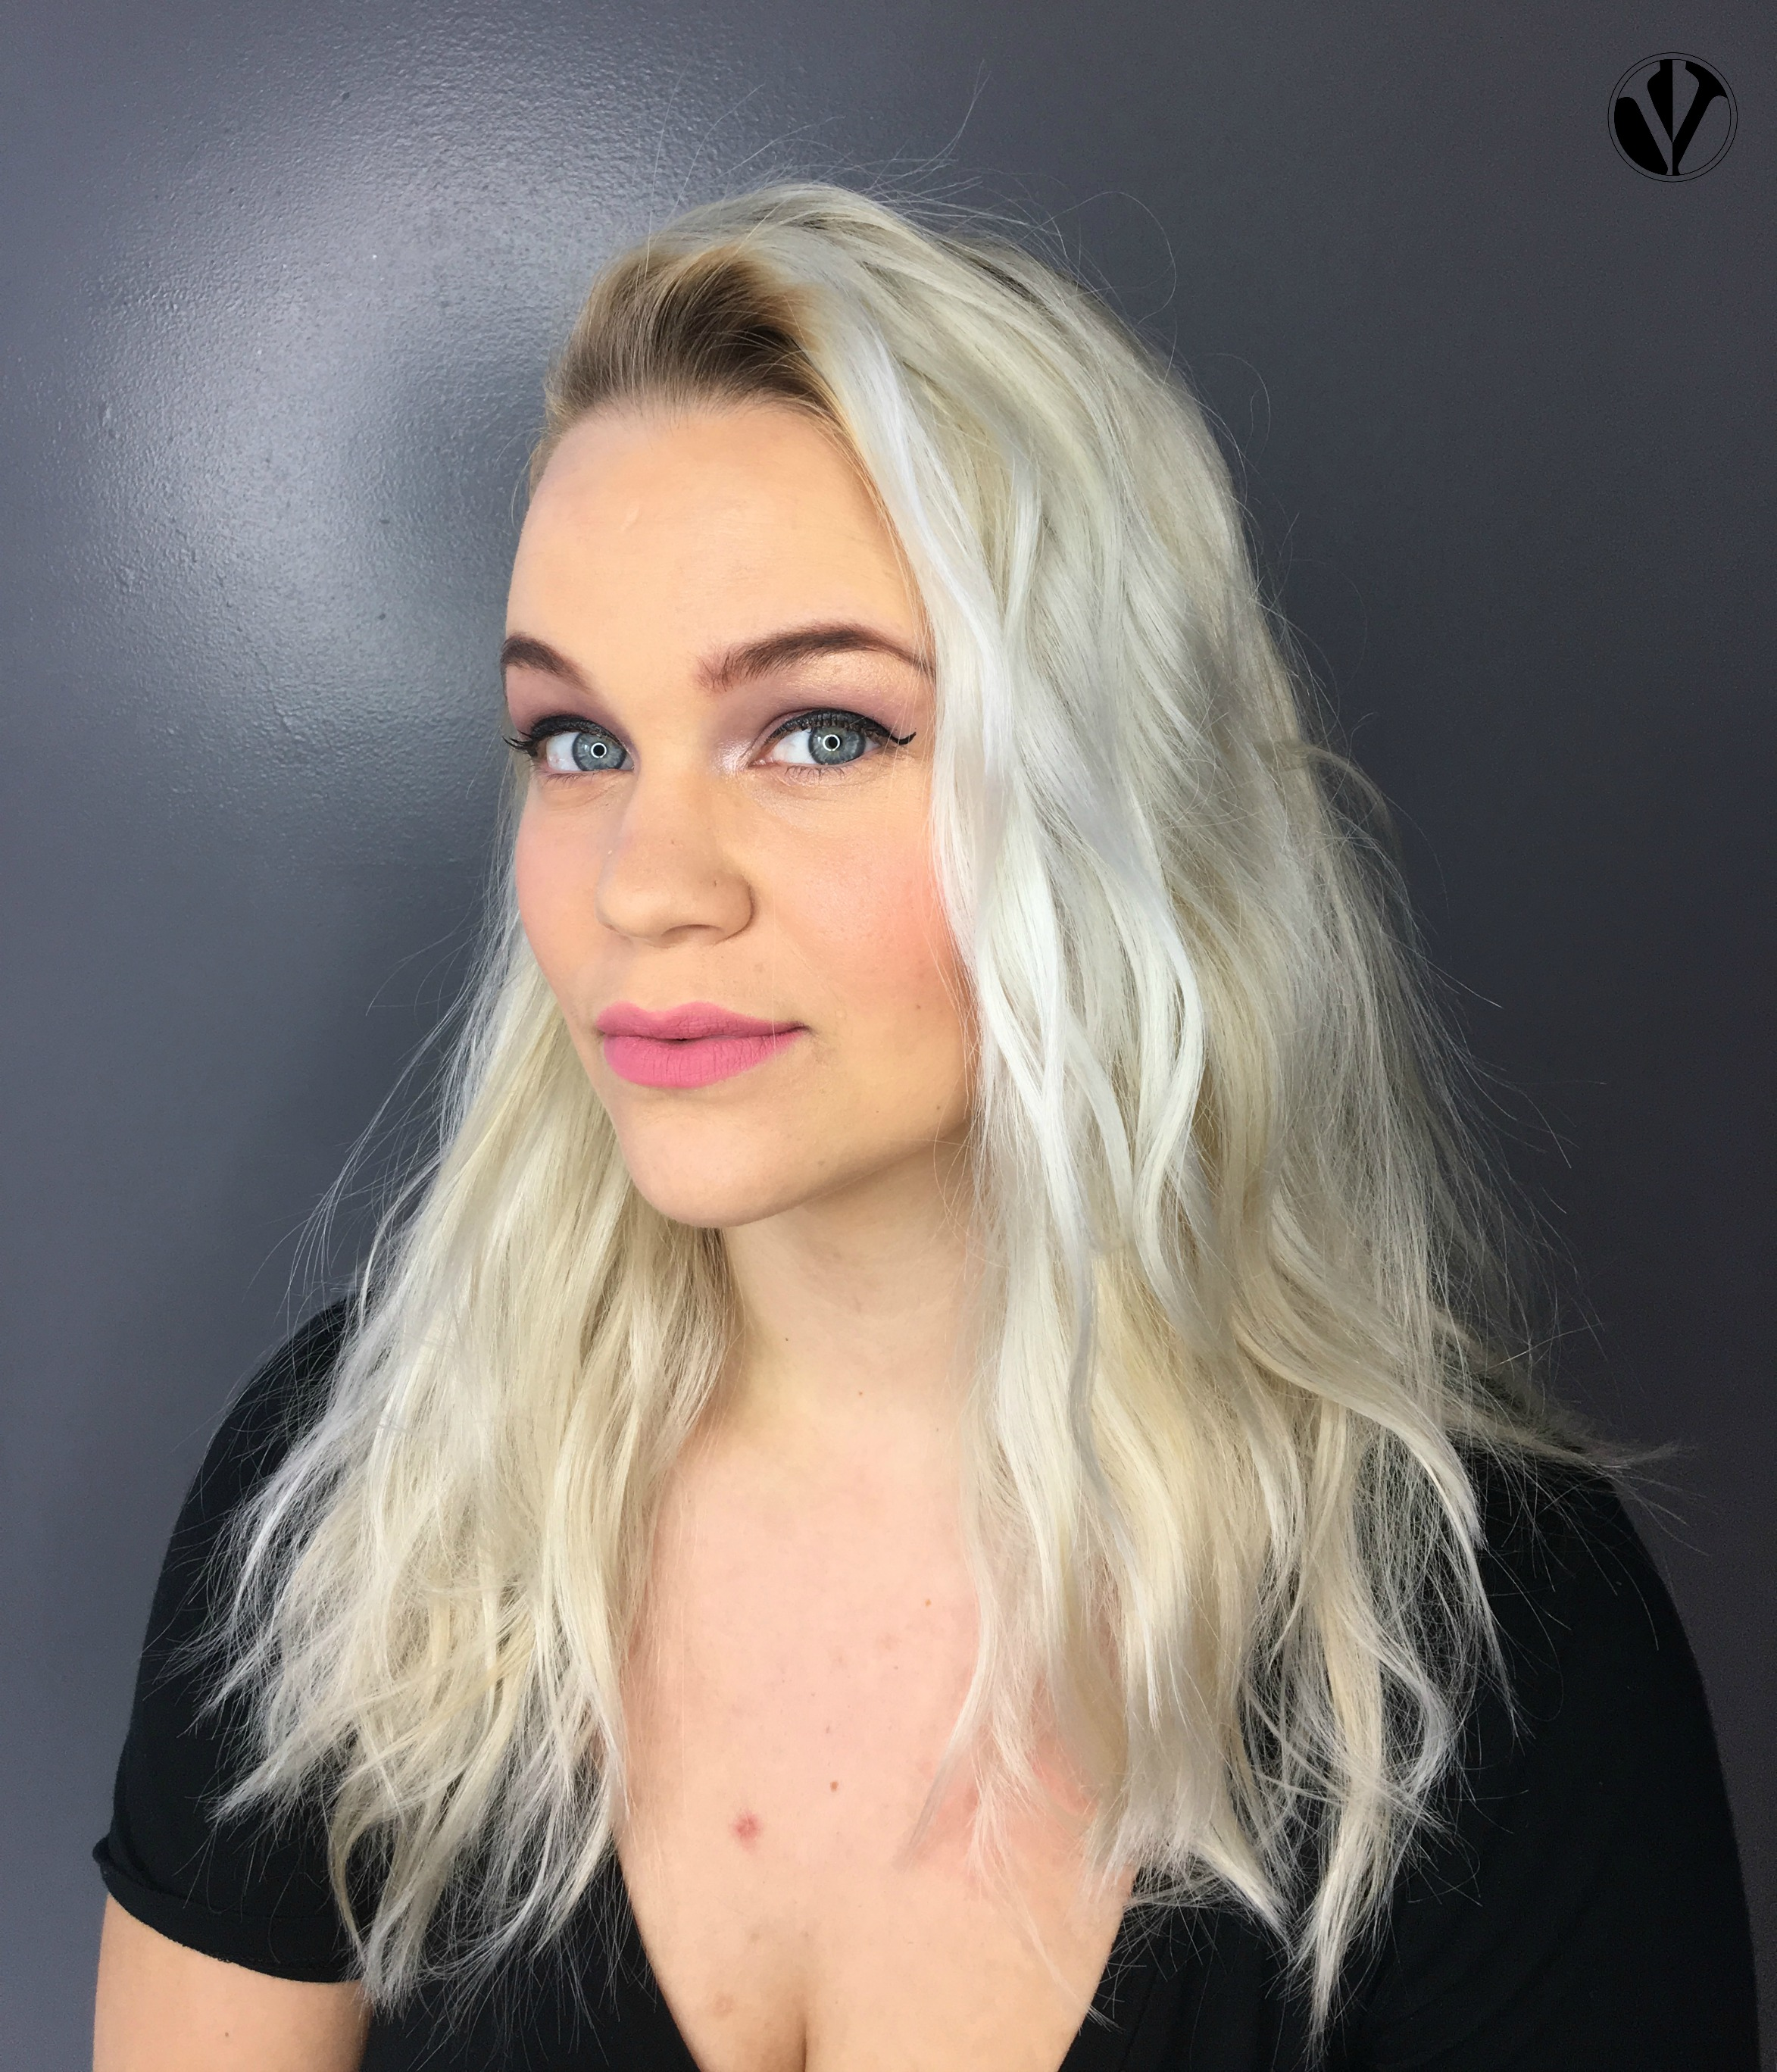 Before The Toner - You'll notice the mixed shades of blonde, especially near the root, resulting from lightening previously-colored hair.